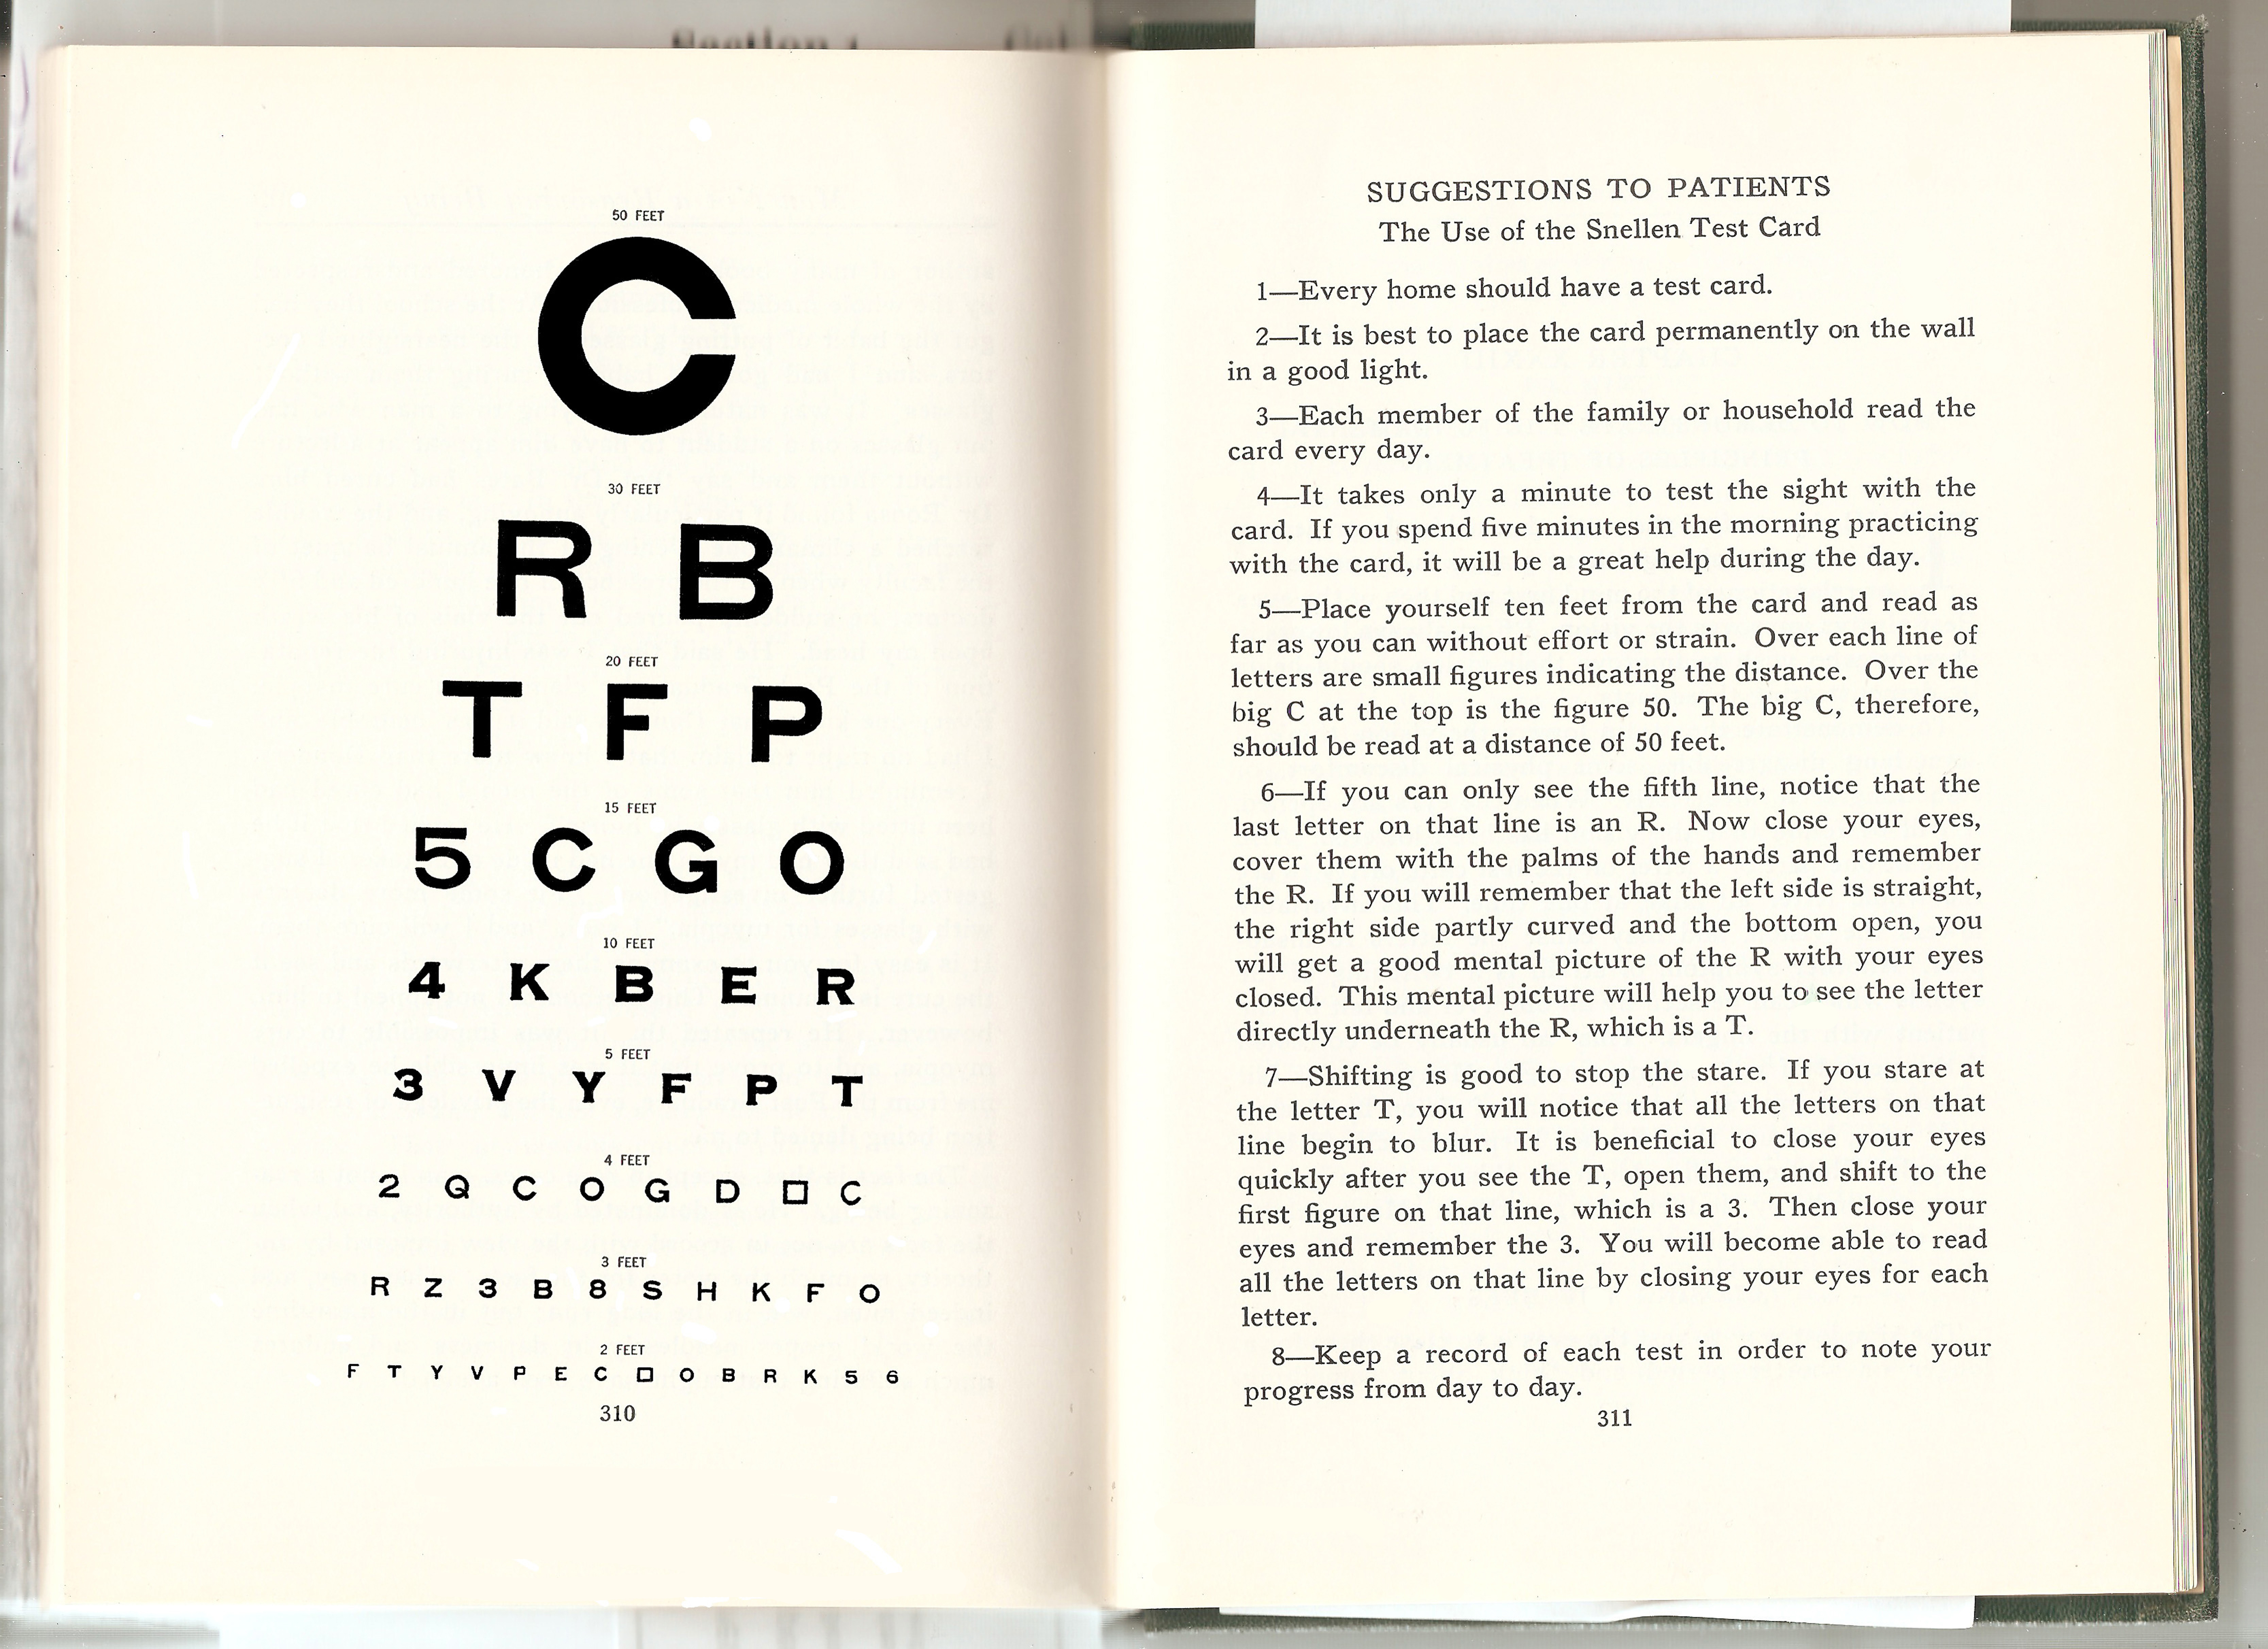 Dr. Bates and Emily's Oringal C Eyechart and Suggestions to Patients - 1940 Perfect Sight Without Glasses Final Print Edition